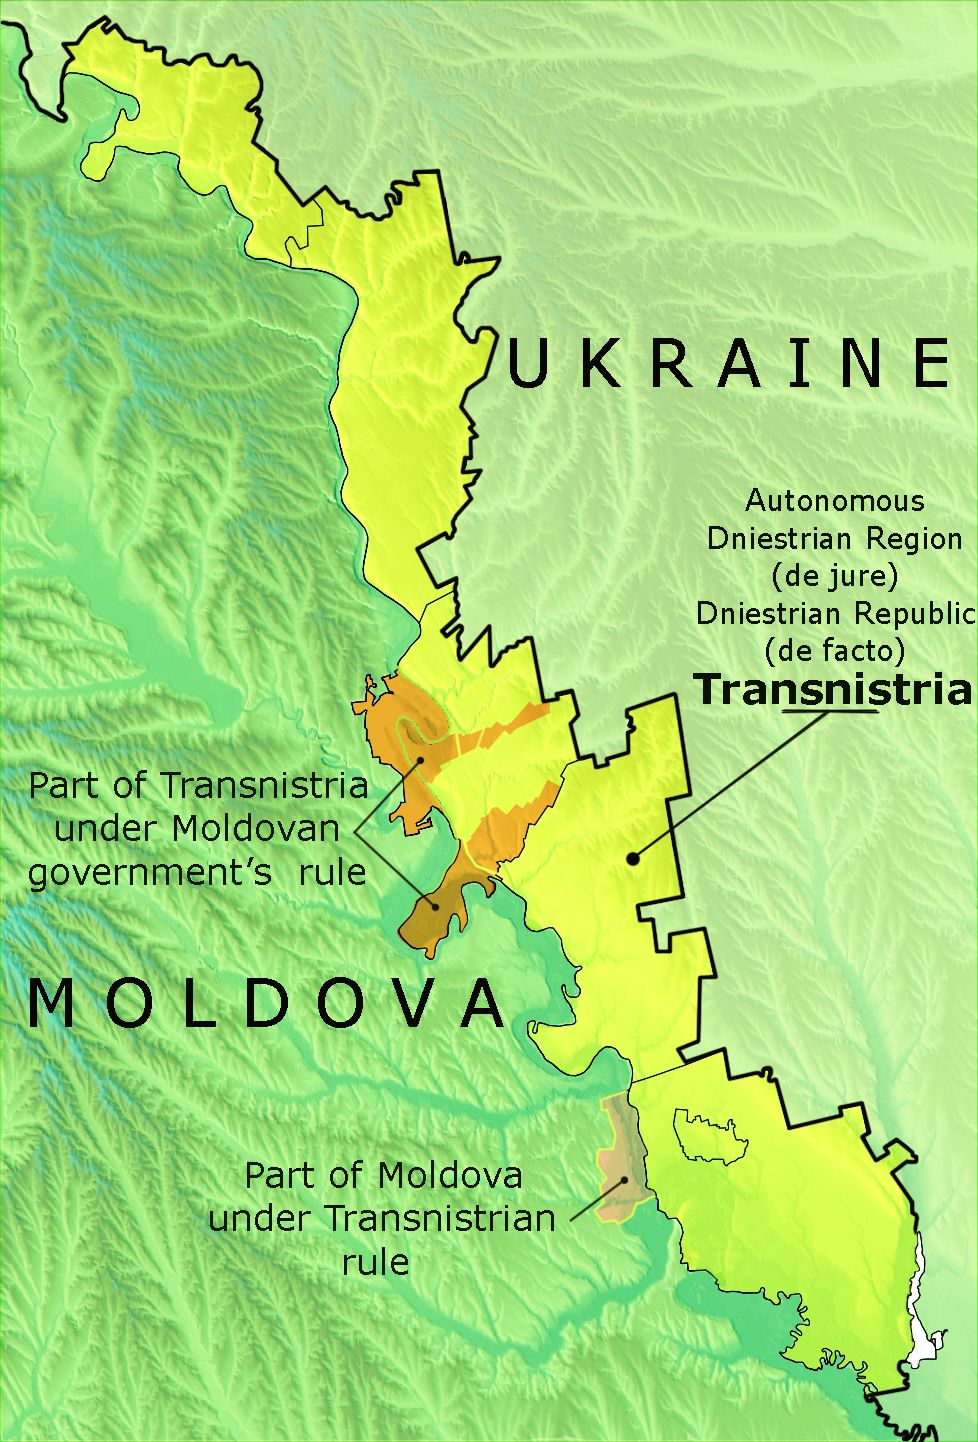 The situation in Transnistria the secessionist part of Moldova